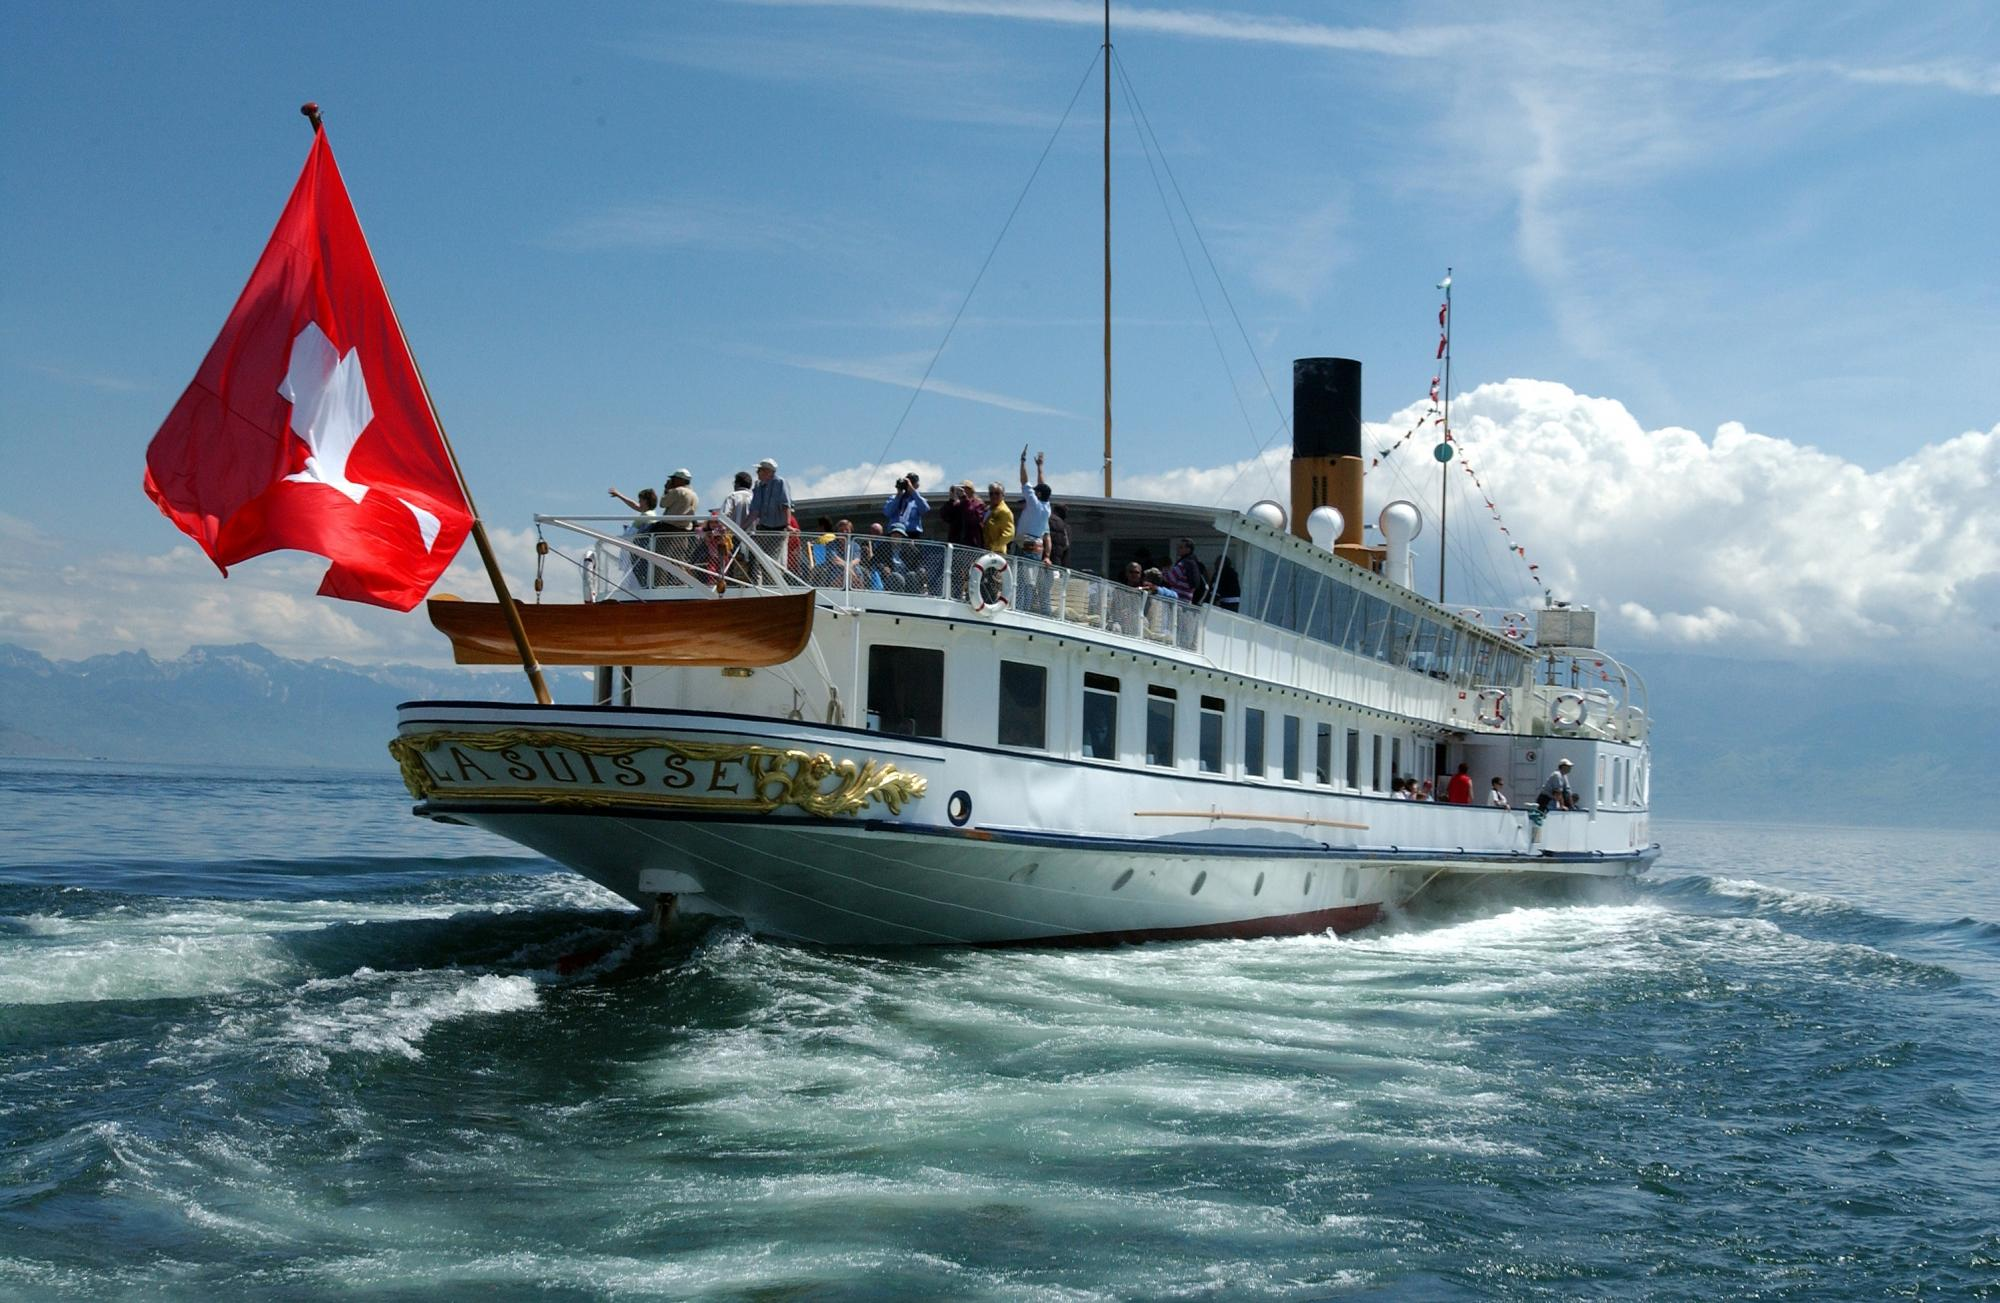 Belle Epoque Cruise on Lake Geneva